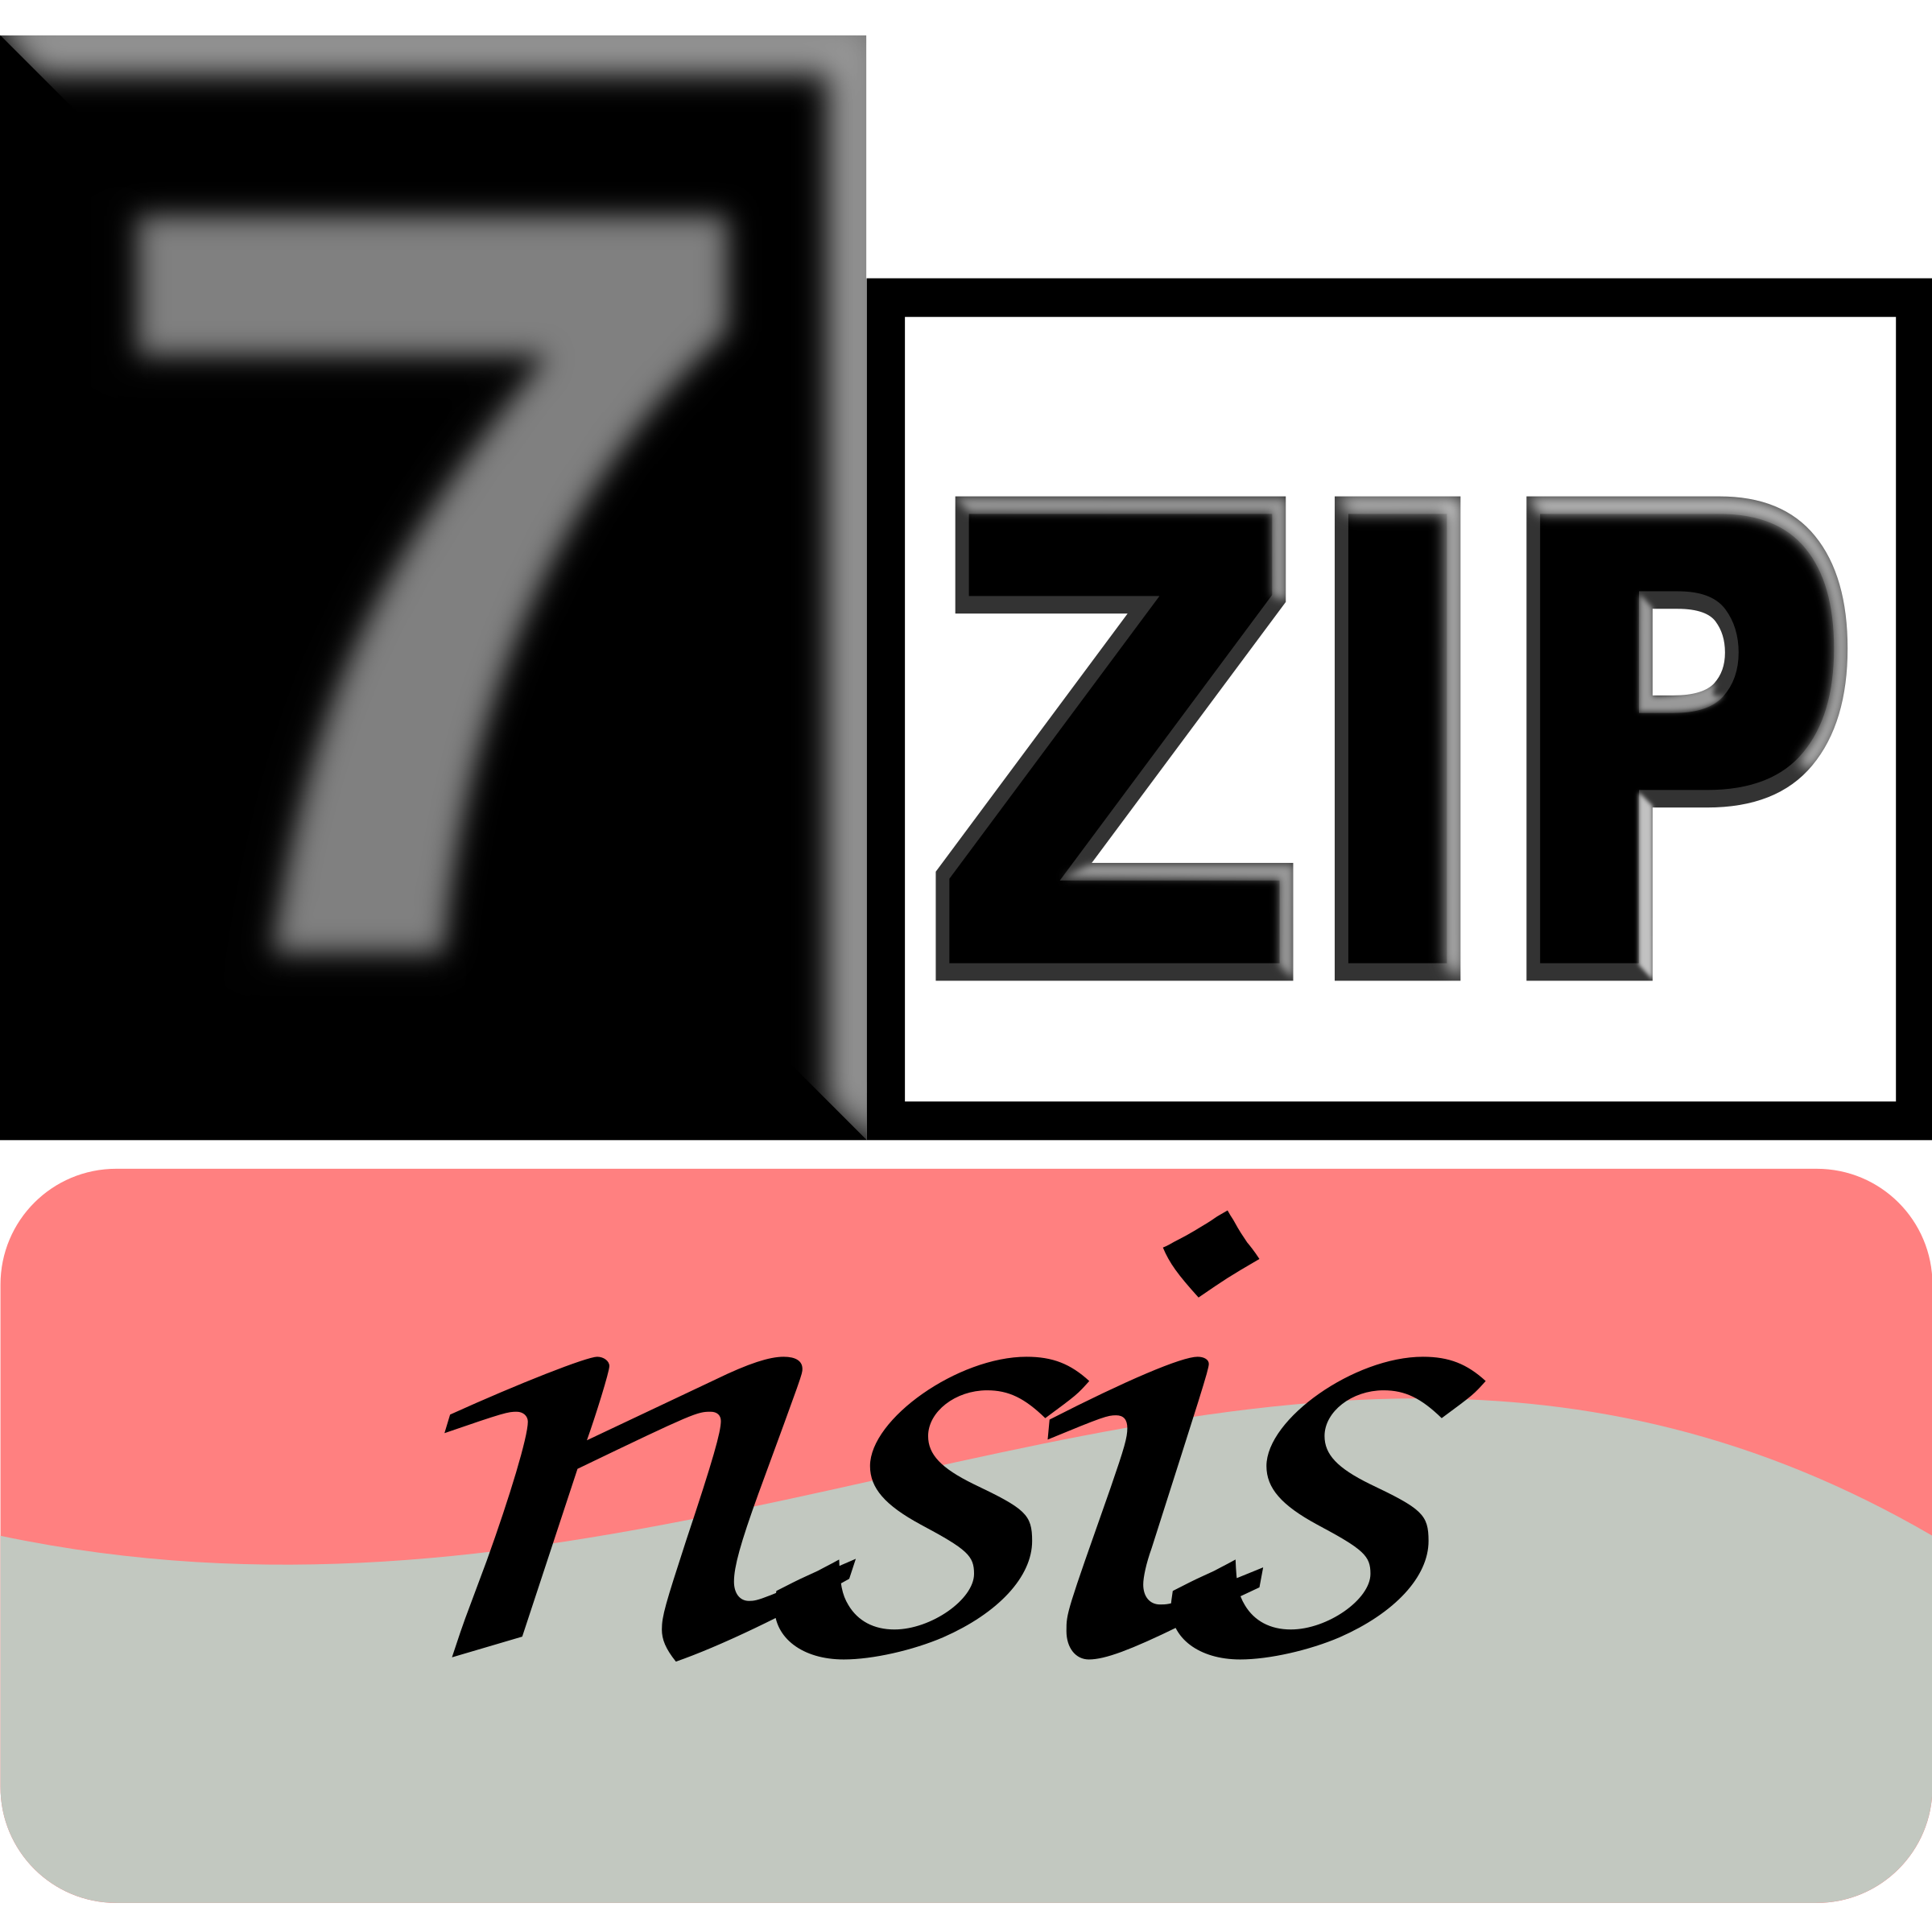 7zipClassic-nsis by kg